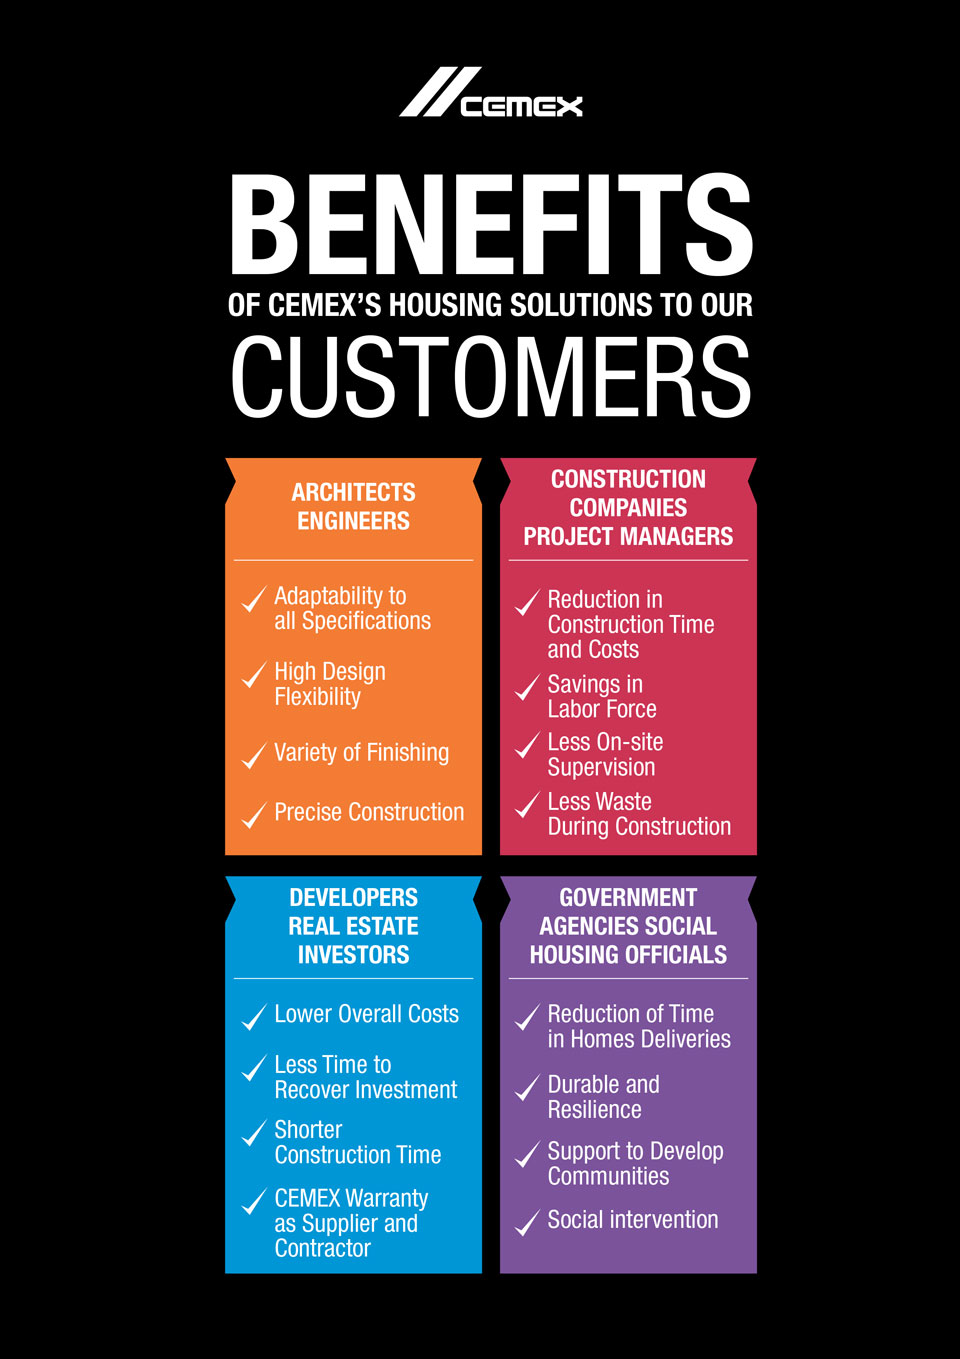 the image shows the several benefits that CEMEX offers to their customers